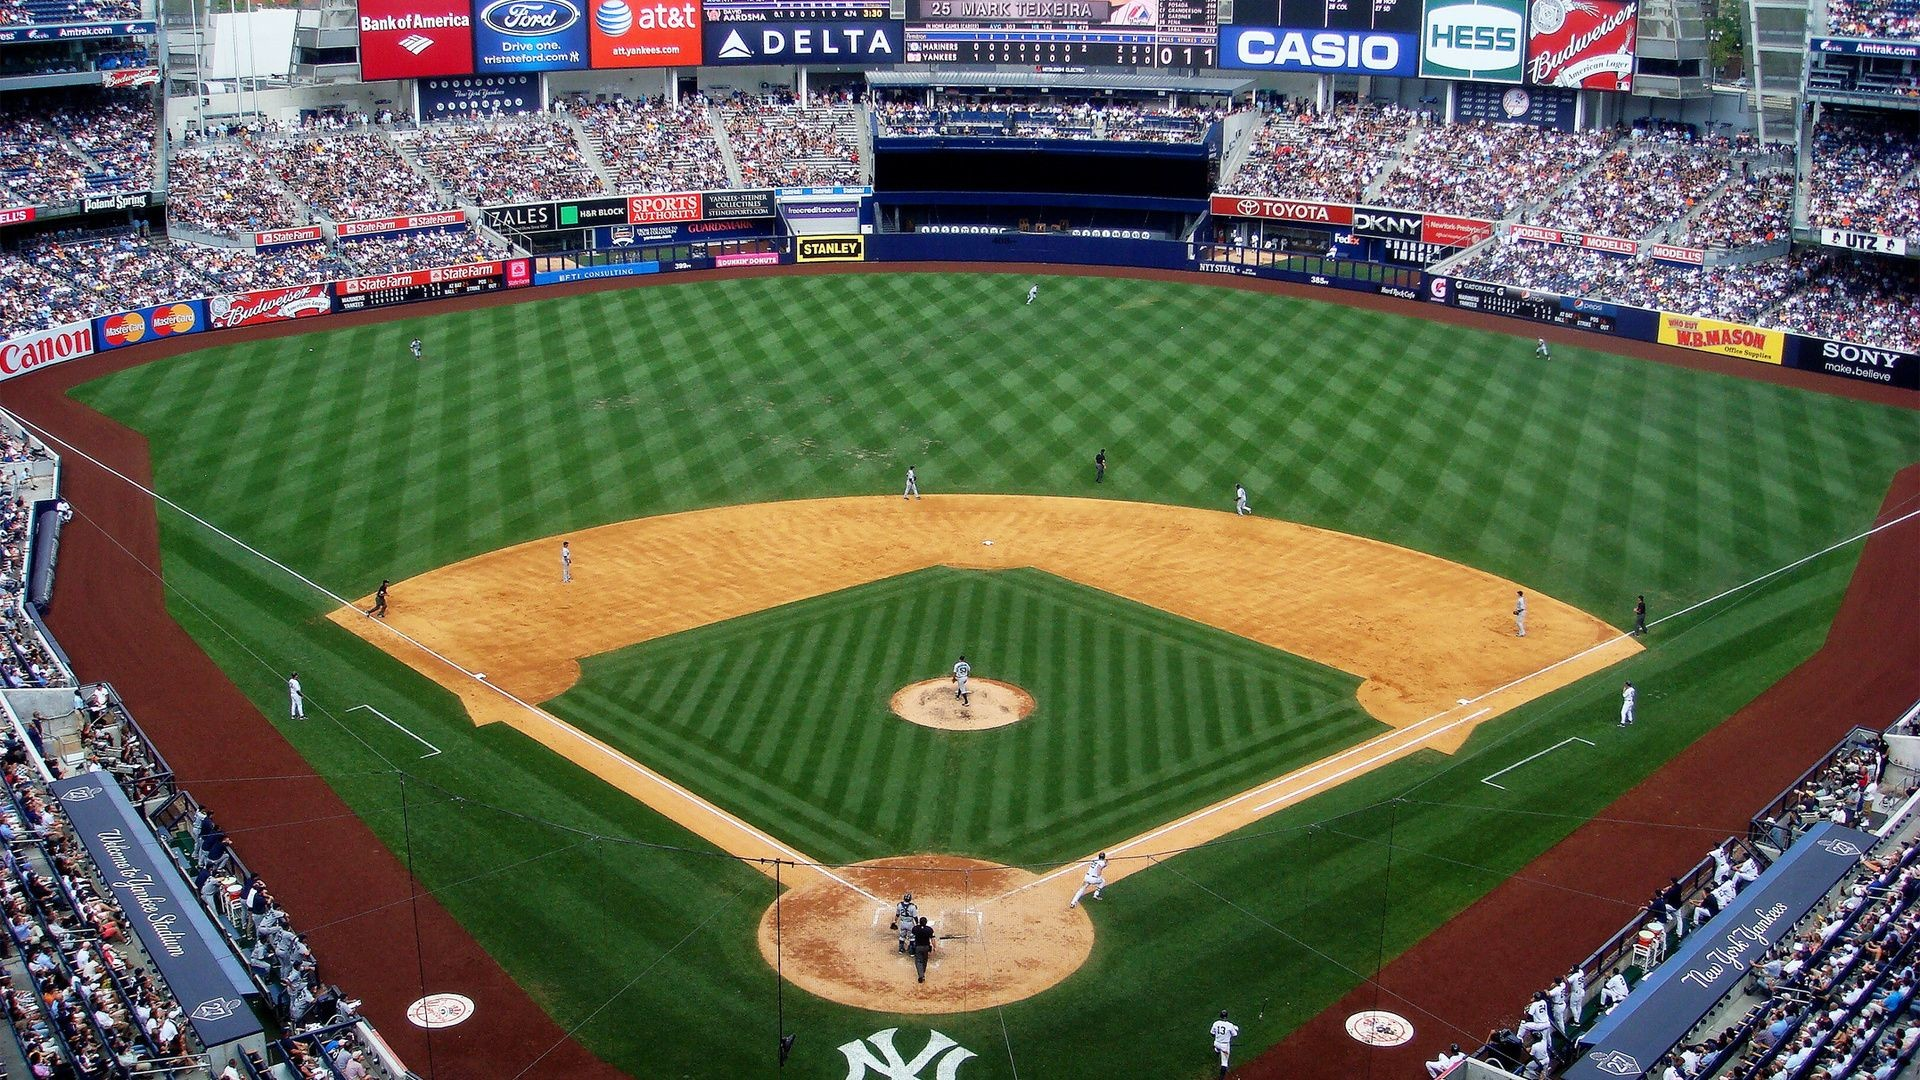 Res: 1920x1080,  baseball, ny yankees, stadium, mlb, new york yankees .